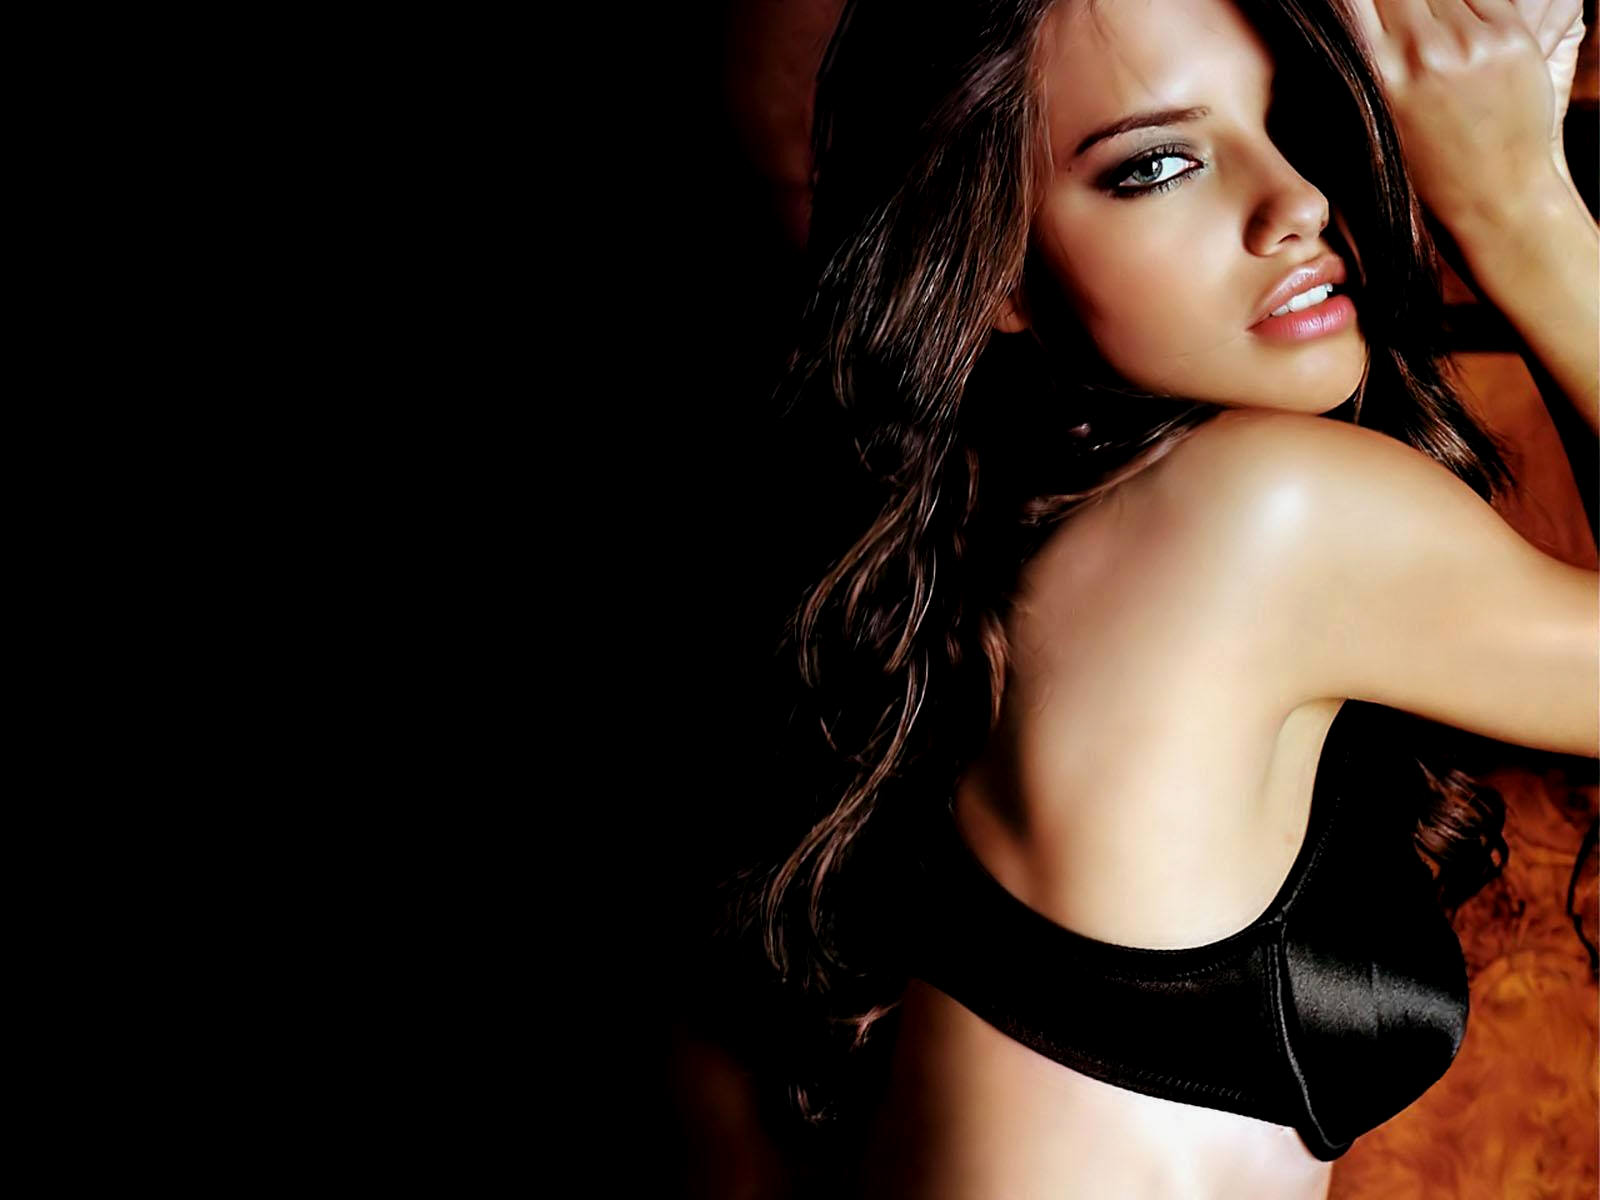 adriana lima hot hd wallpapers - sports updates